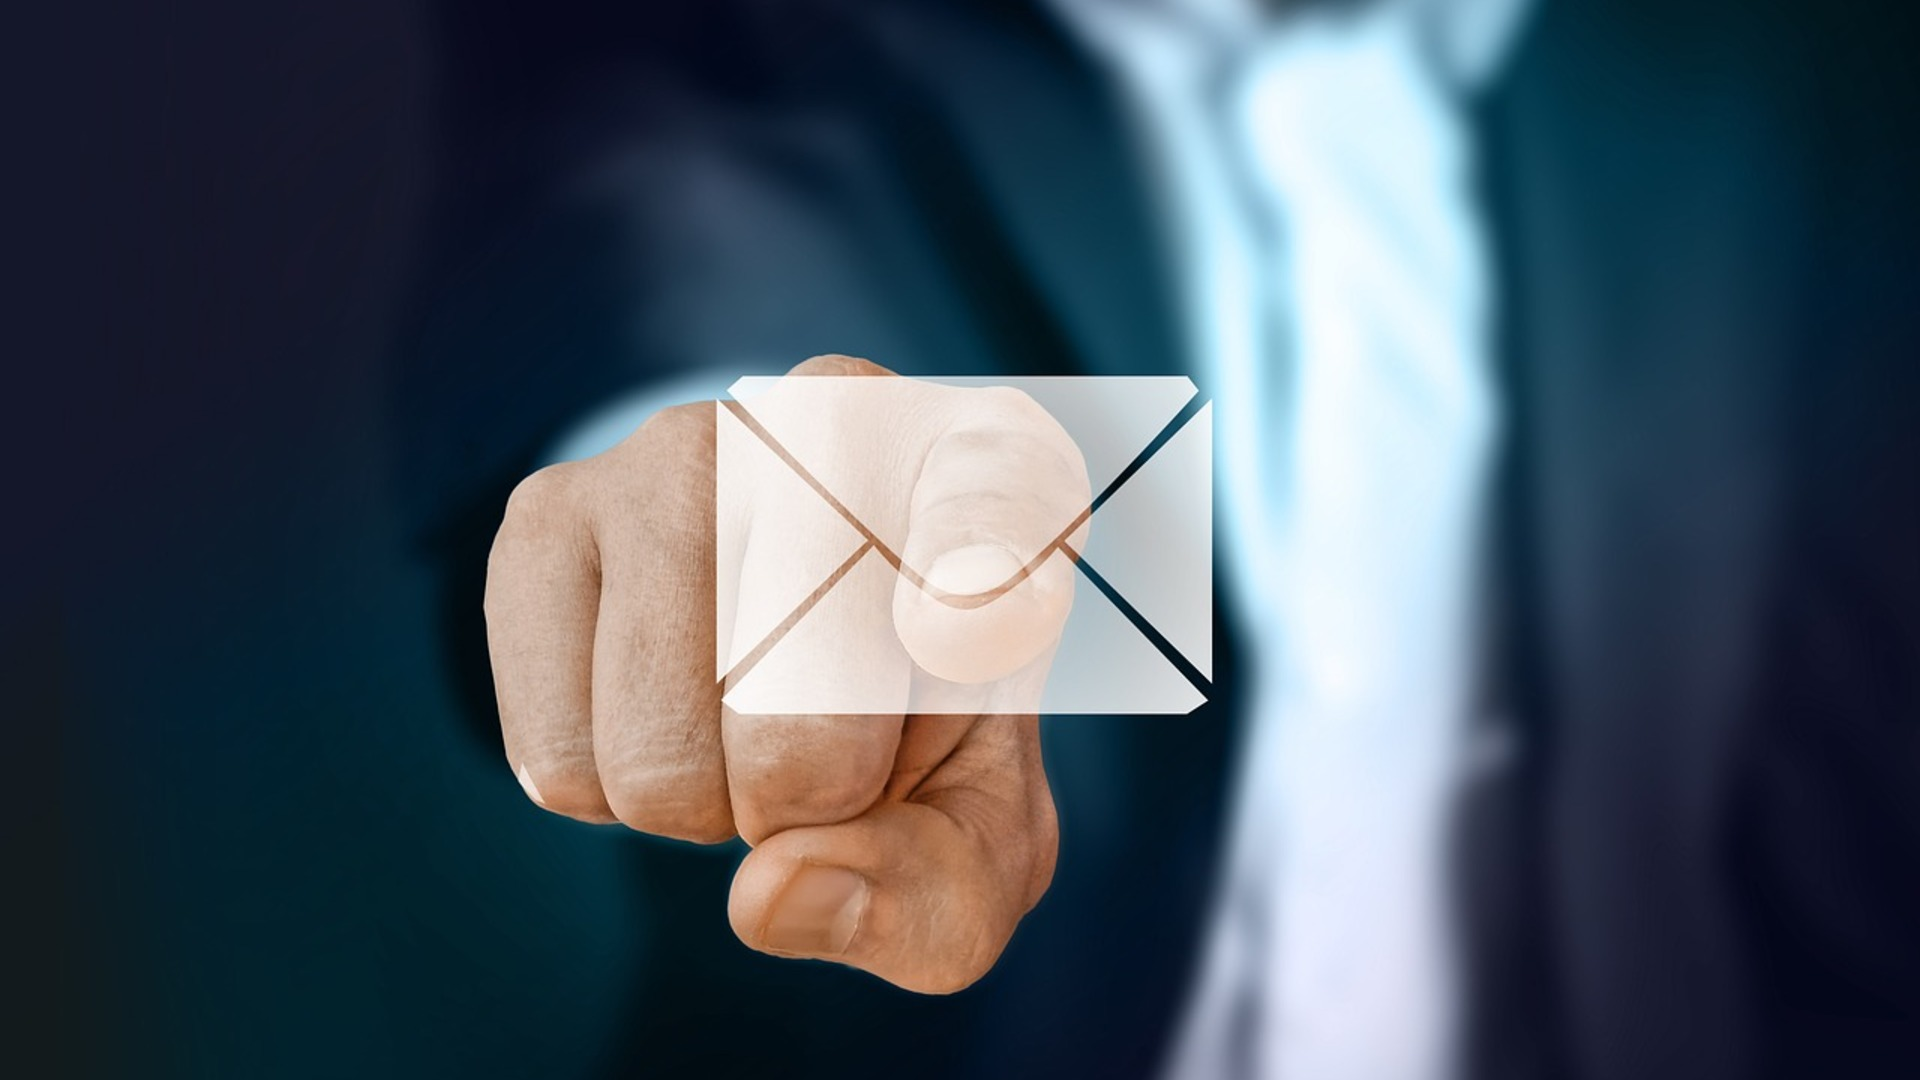 How to Improve Informal Writing in Business Emails